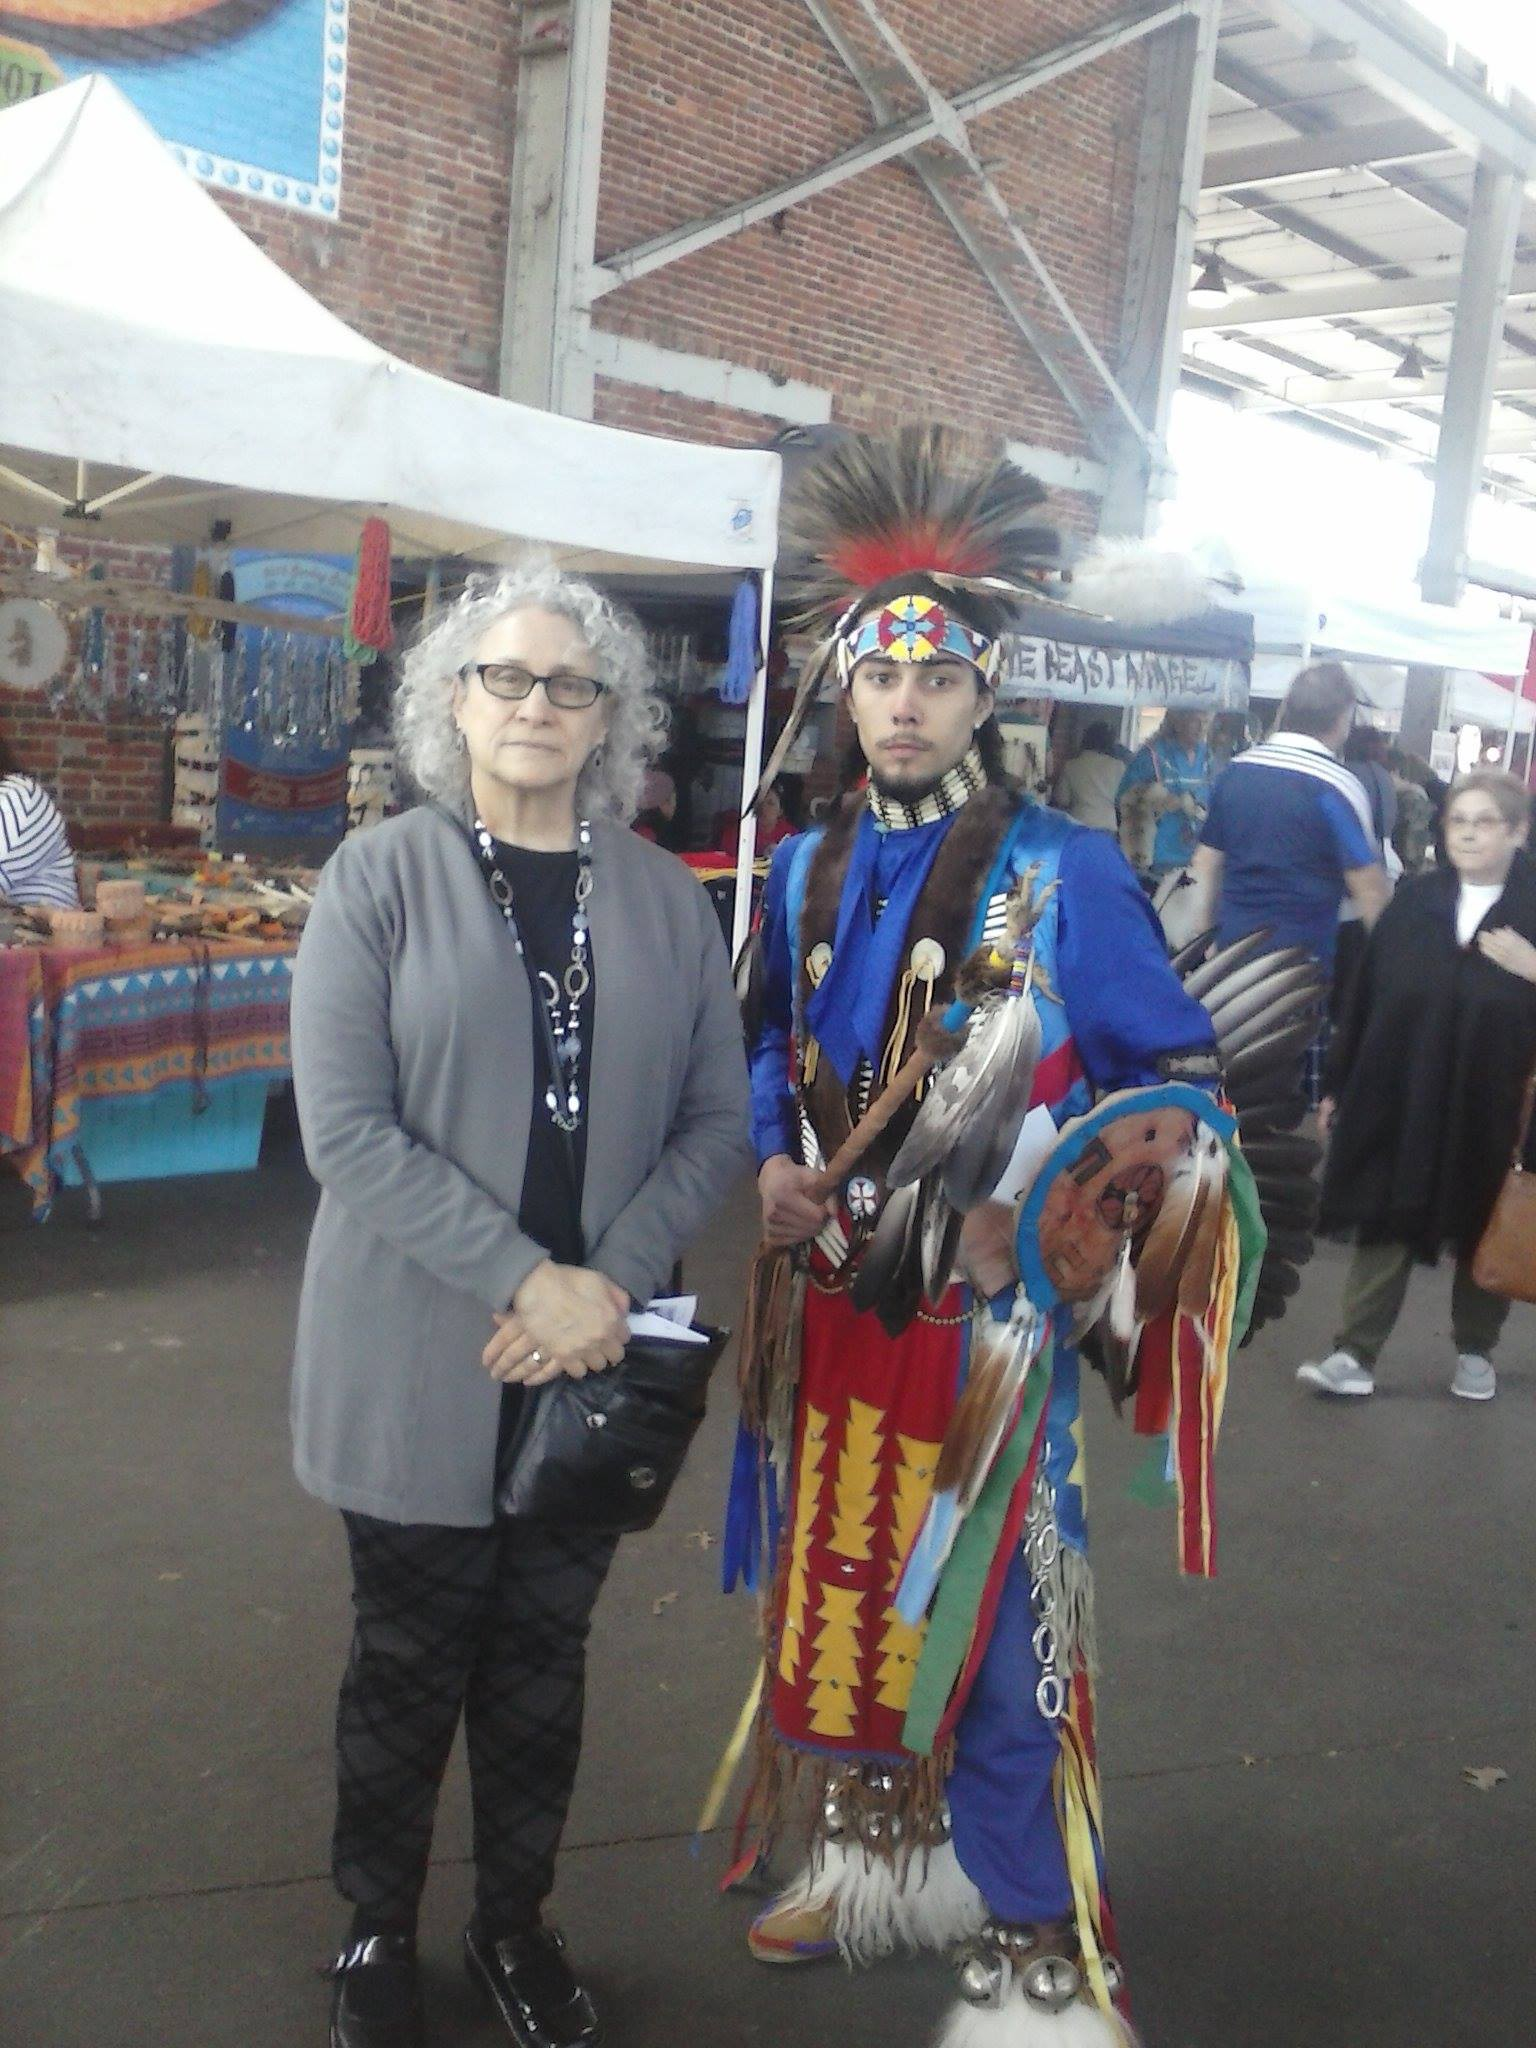 Deborah Levine and Native American colleague at Chattanooga festival